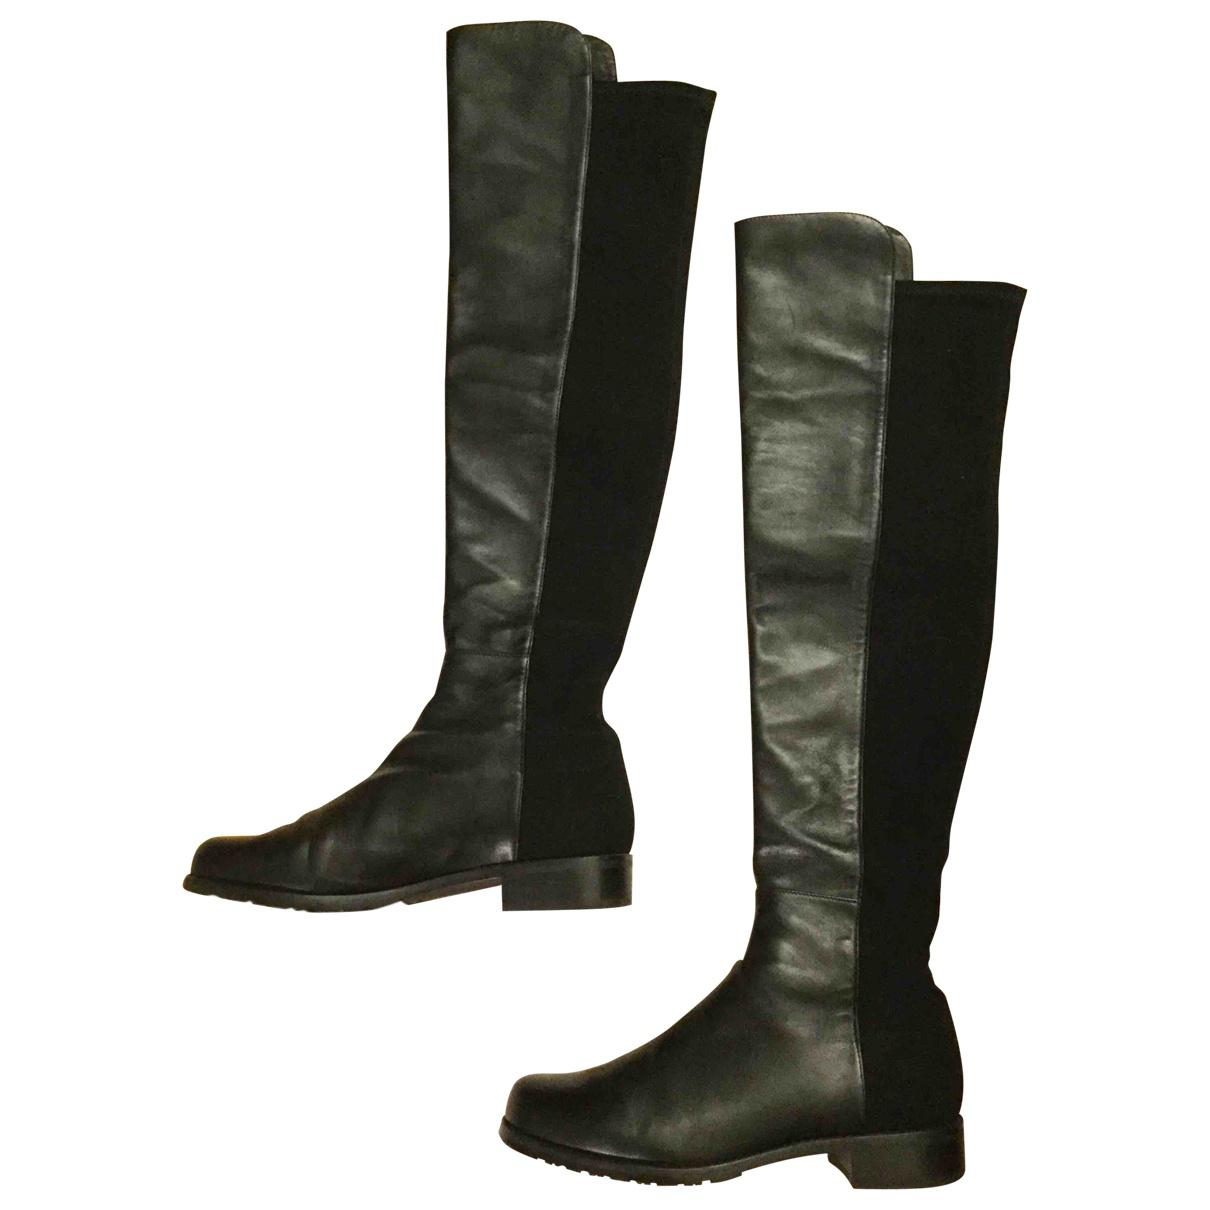 Pre-owned - LEATHER BOOTS Stuart Weitzman Lowest Price Outlet Brand New Unisex Cheap Affordable 0hR06PL